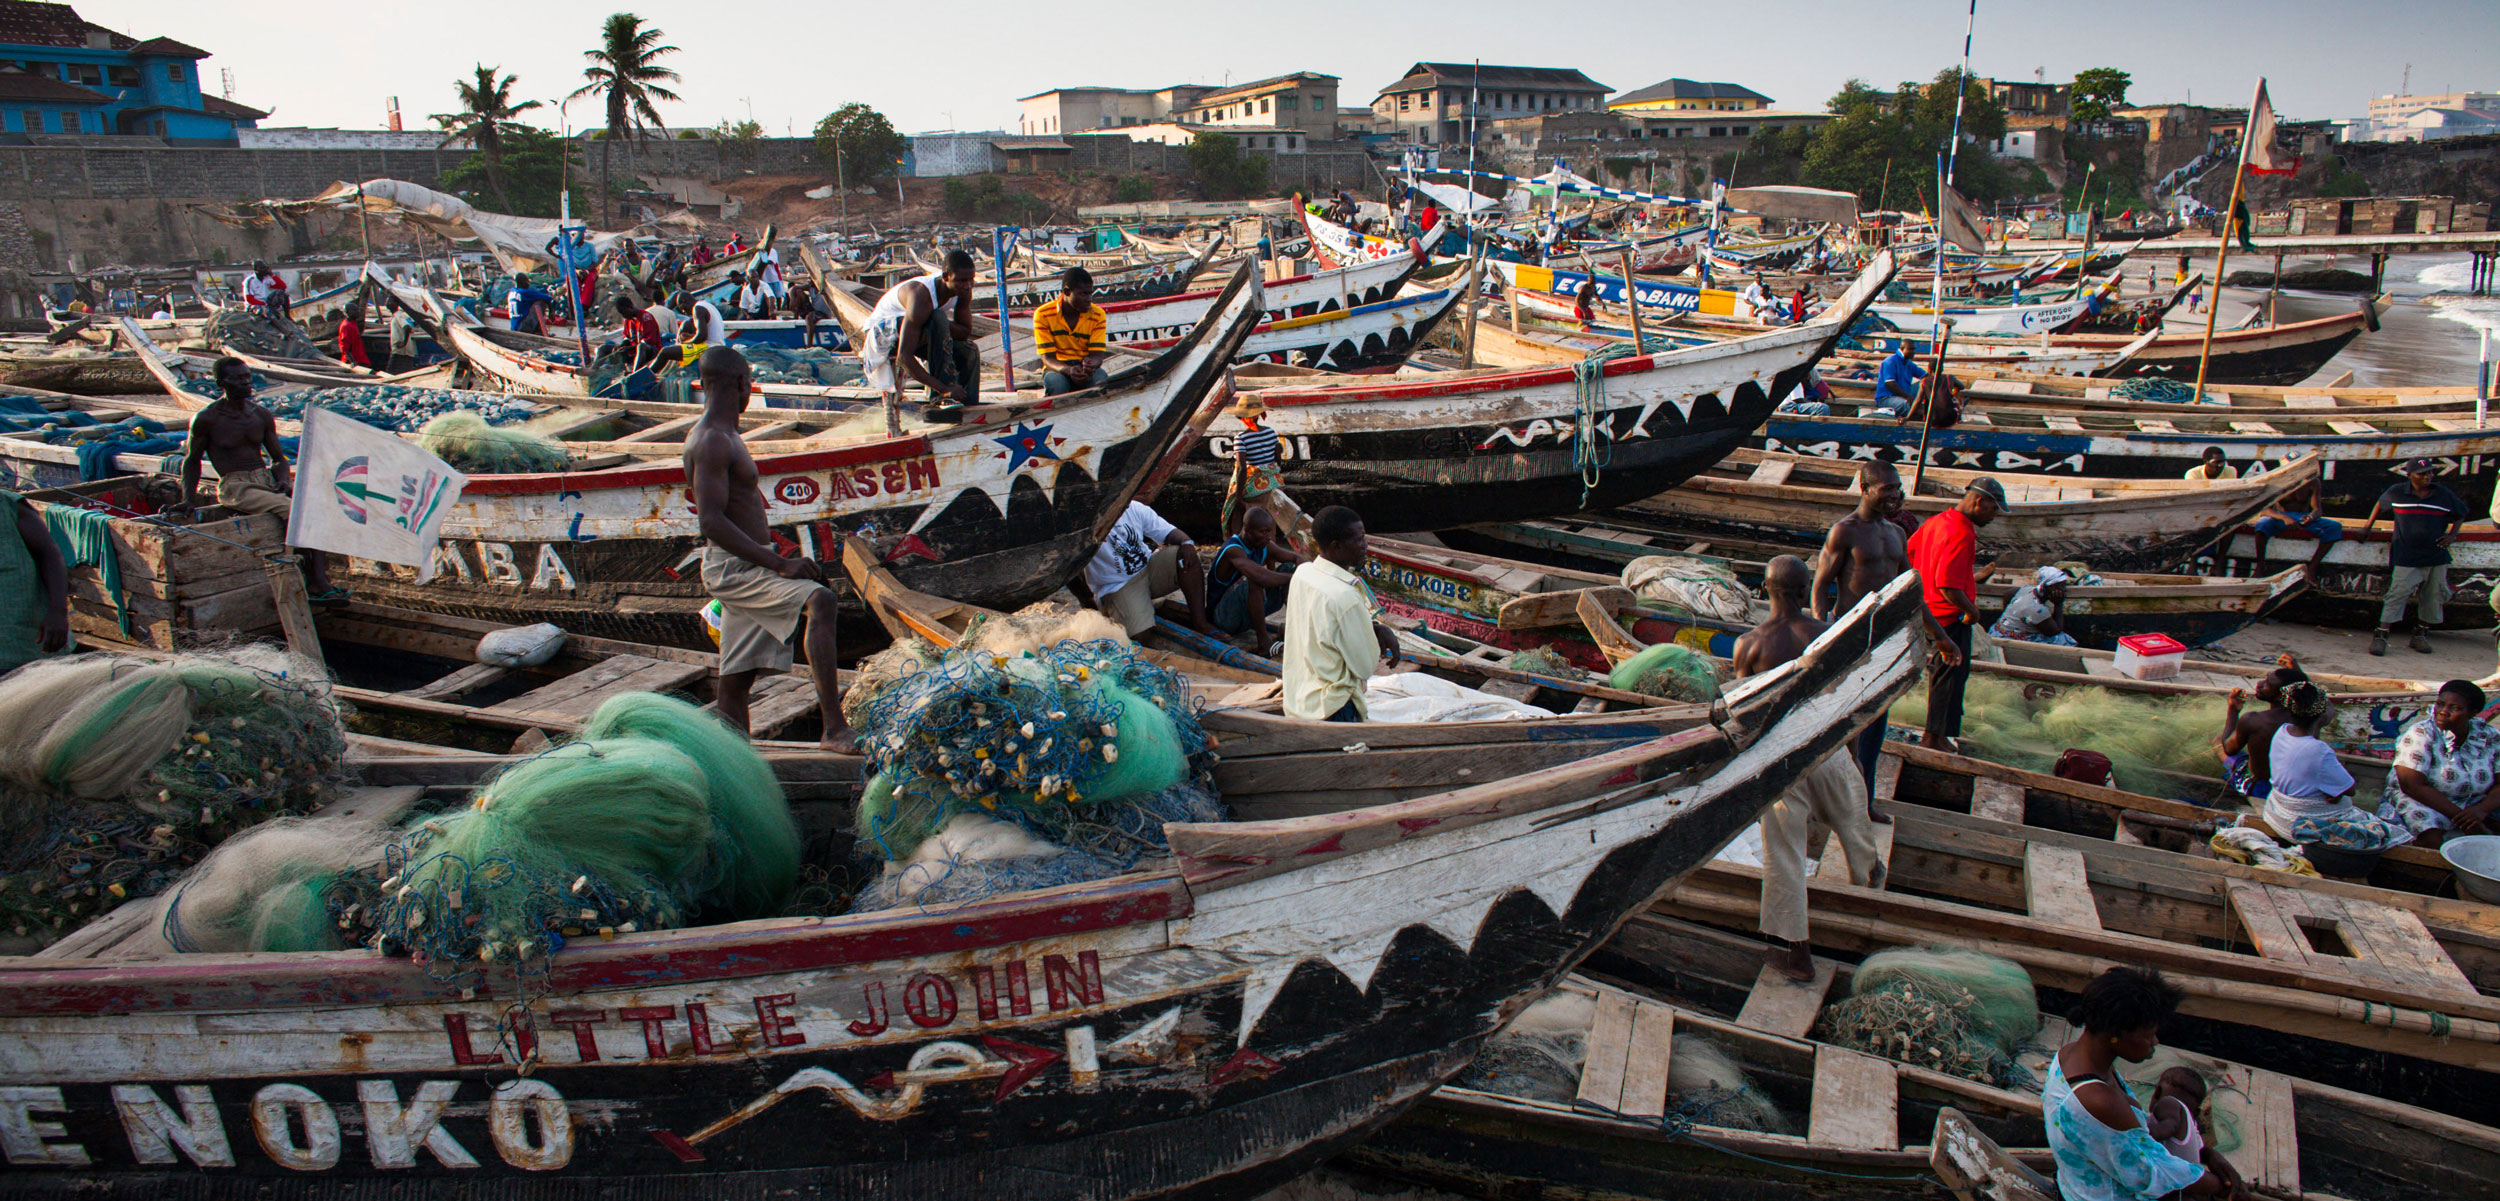 Fishing boats on the beach in Accra, Ghana